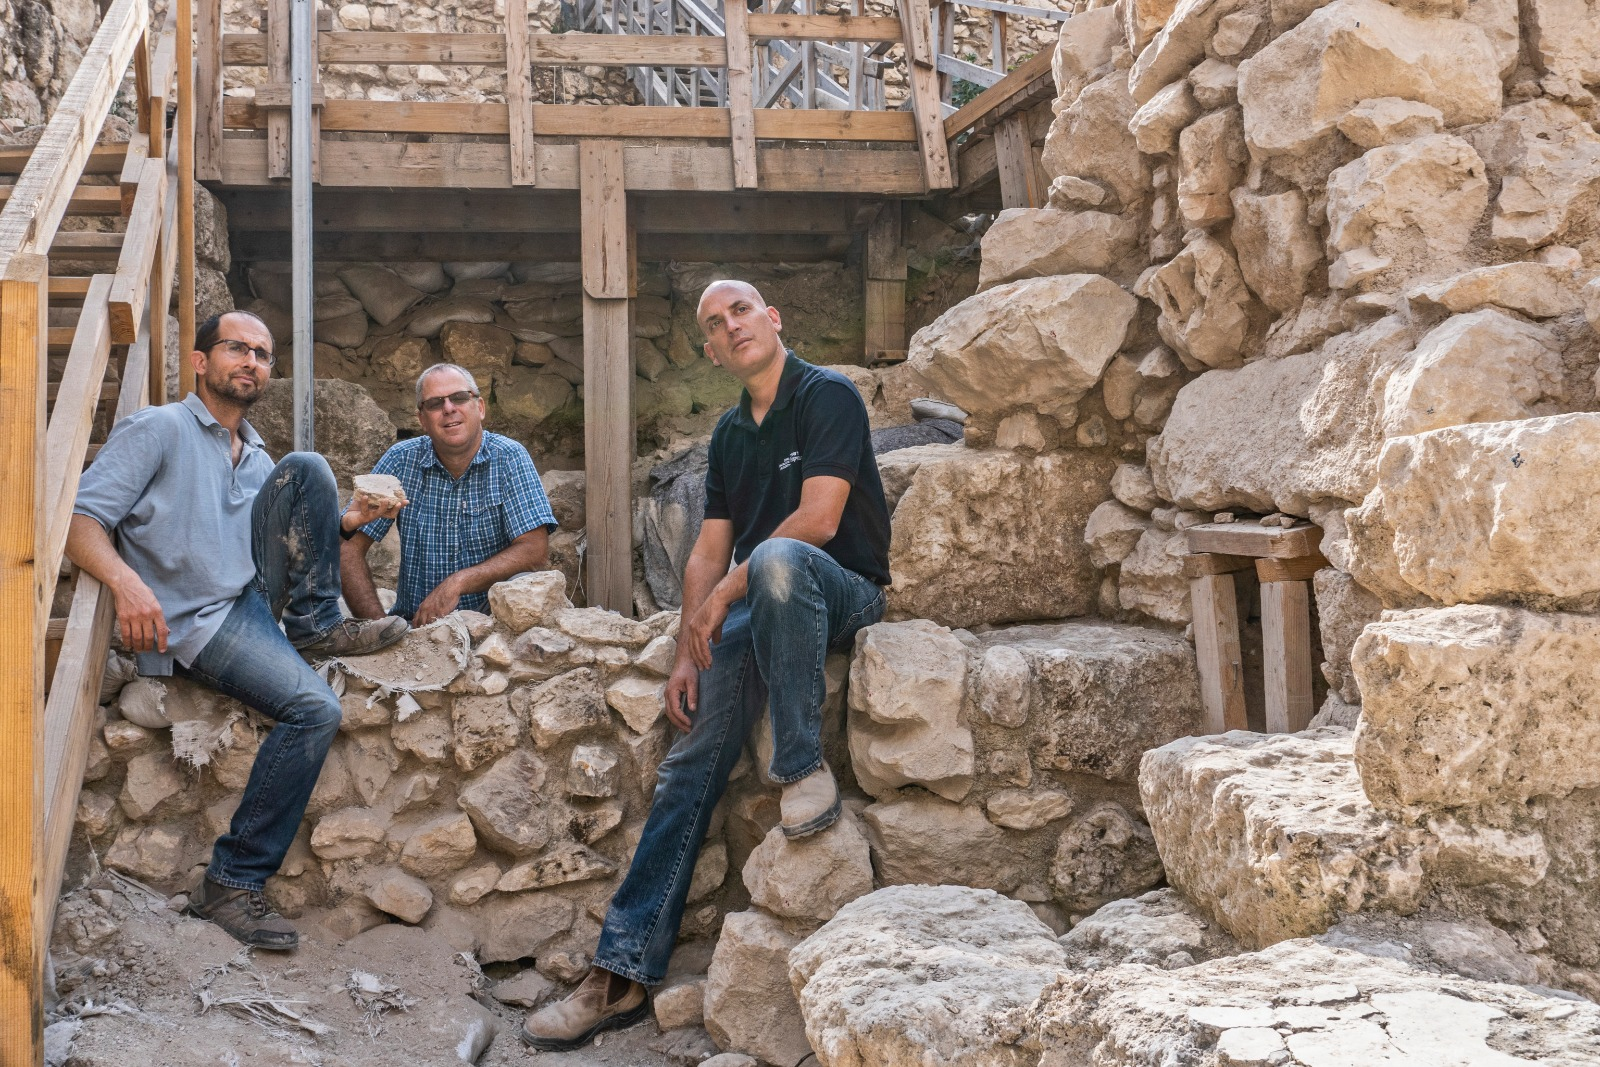 Left to Right-Yoav Vaknin Prof. Gadot Dr. Shalev. Photographer Shai Halevi Israel Antiquities Author